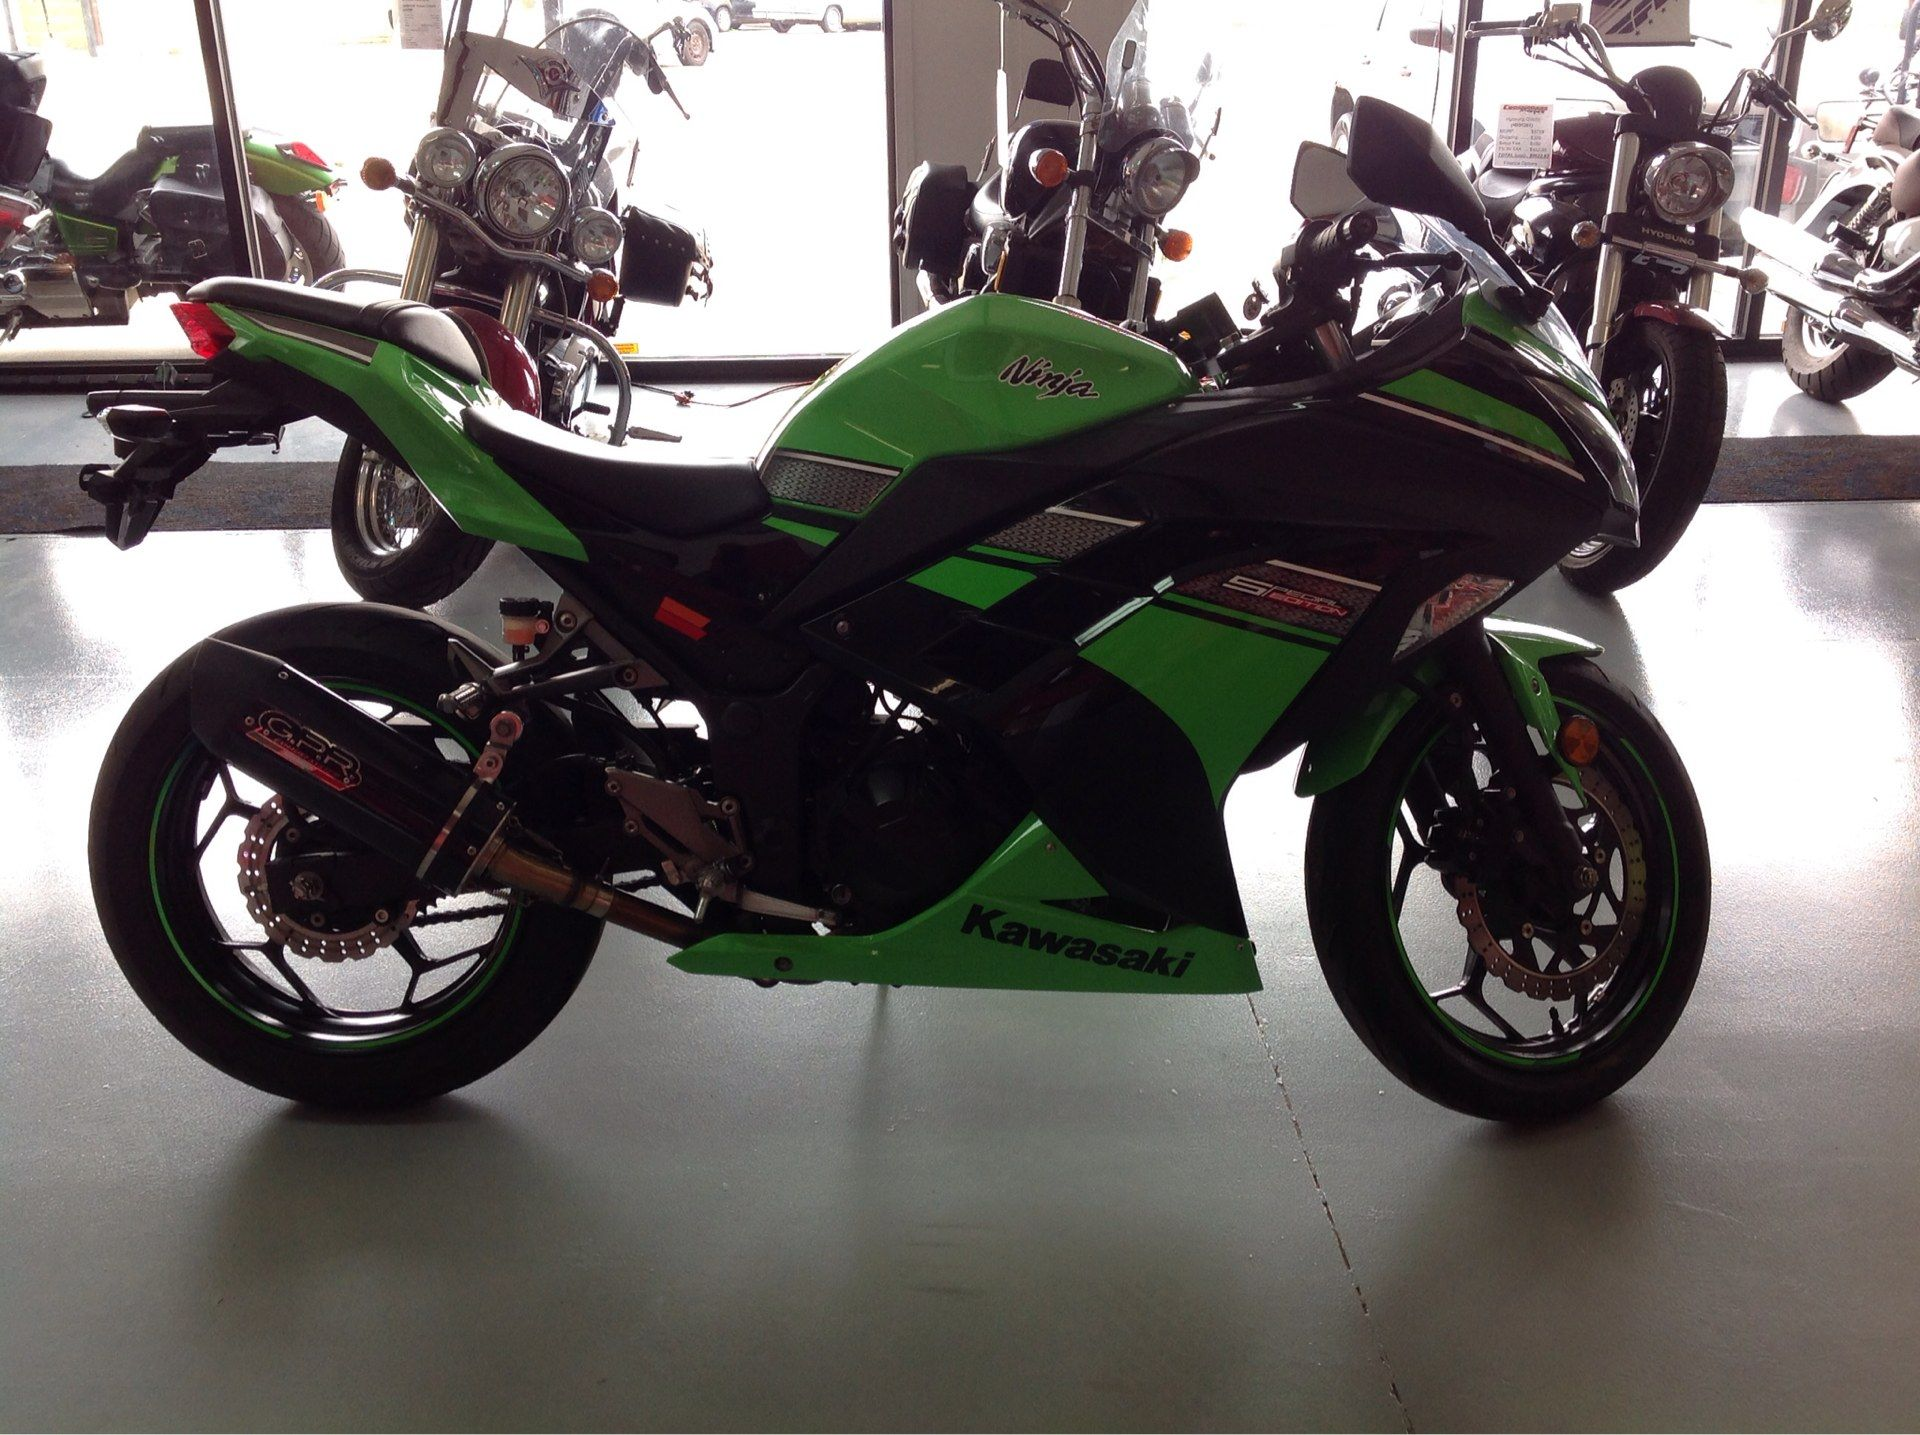 2013 Kawasaki Ninja® 300 in Lafayette, Indiana - Photo 3